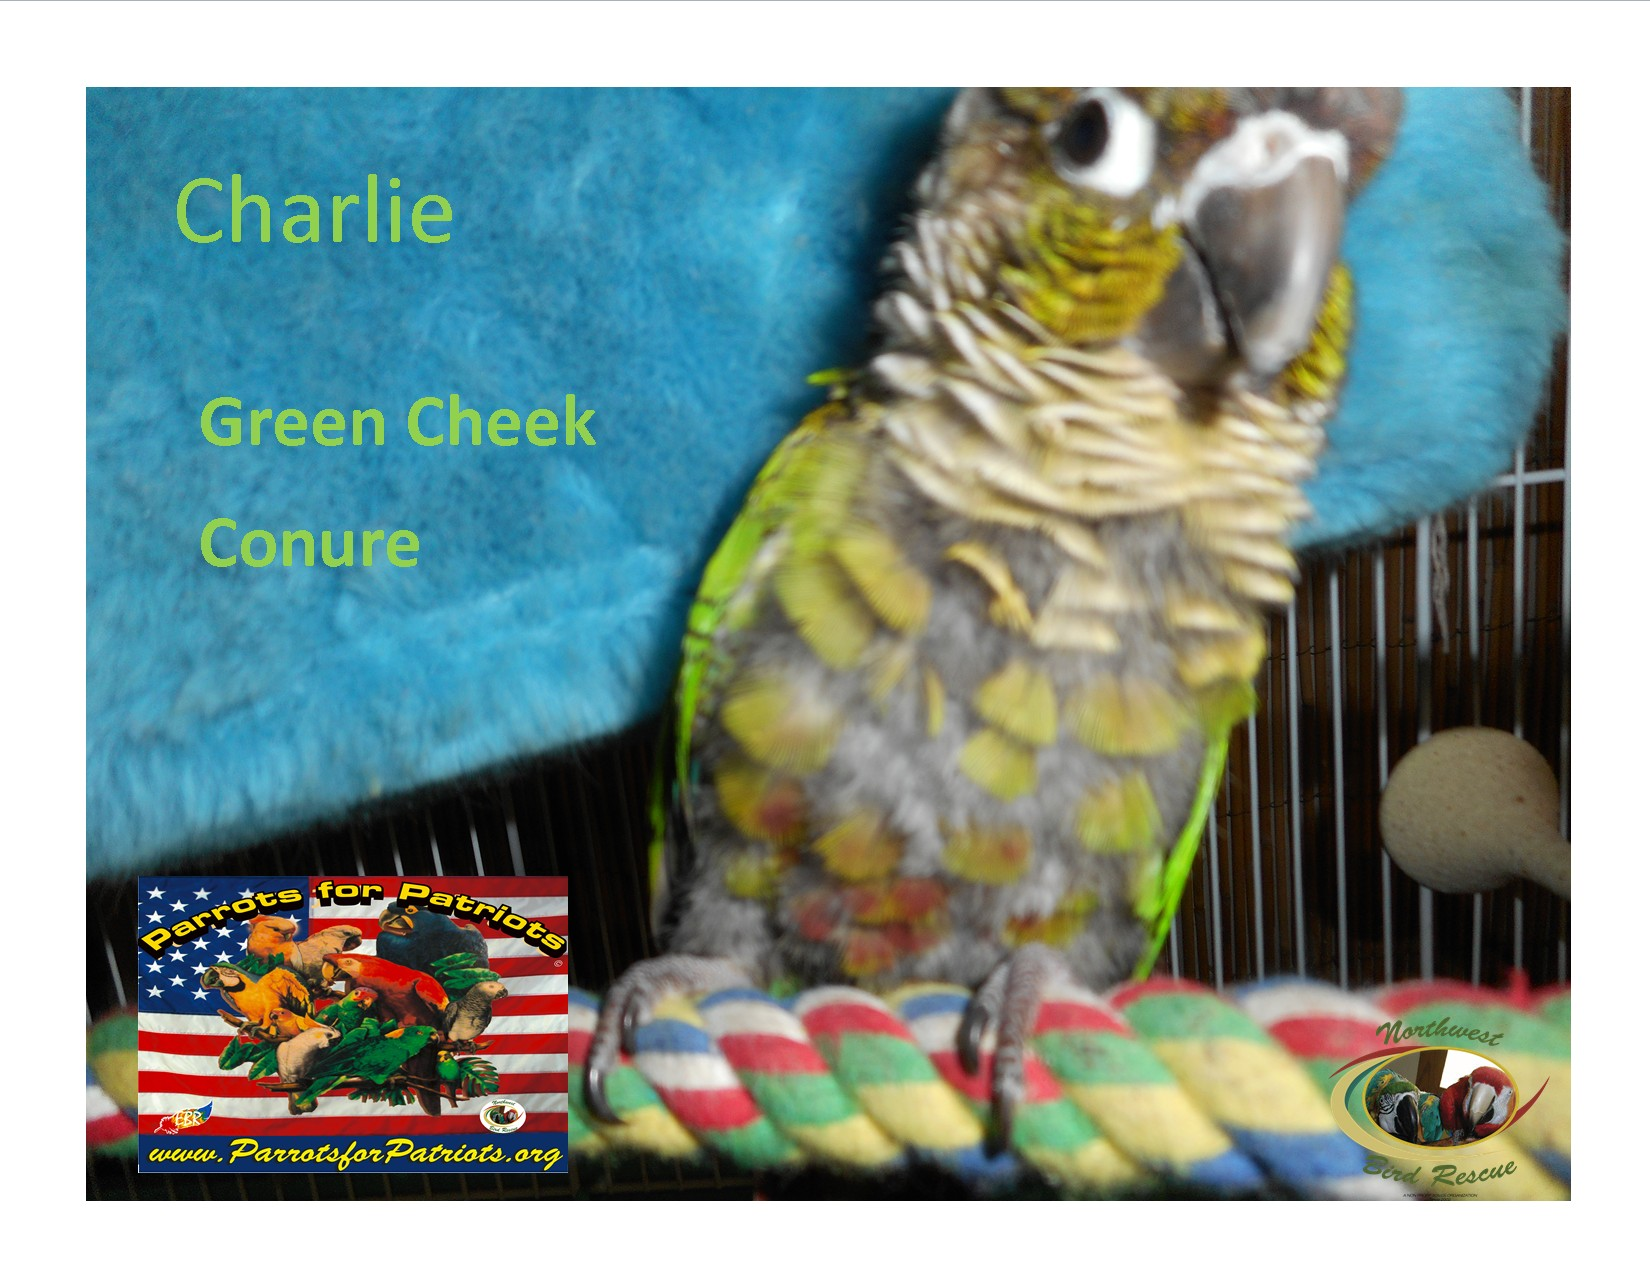 Vancouver, WA - Conure  Meet Charlie The Green Cheek Conure a Pet